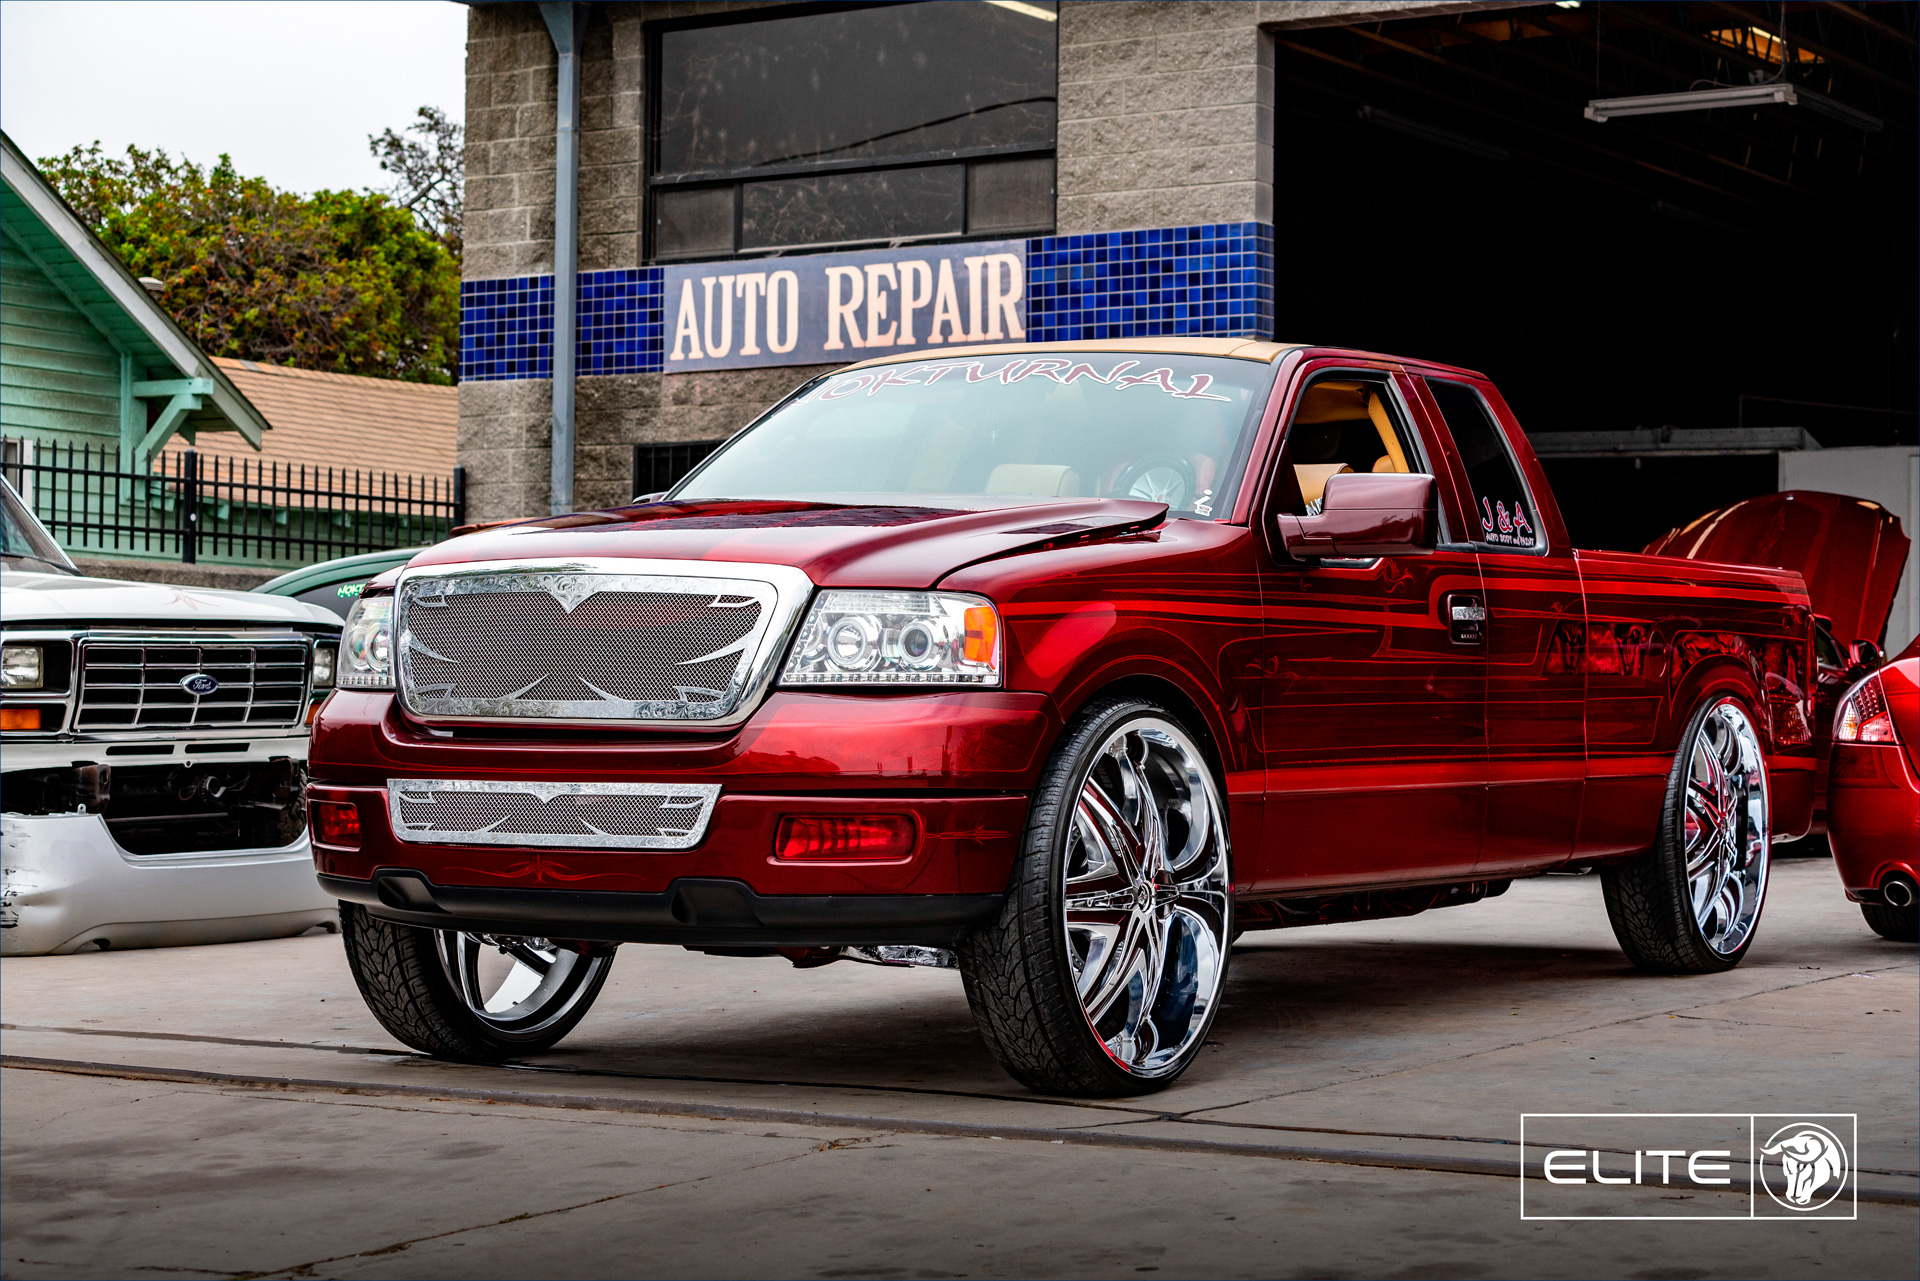 Elite 30″ Diablo Wheels Ford F150 NOK